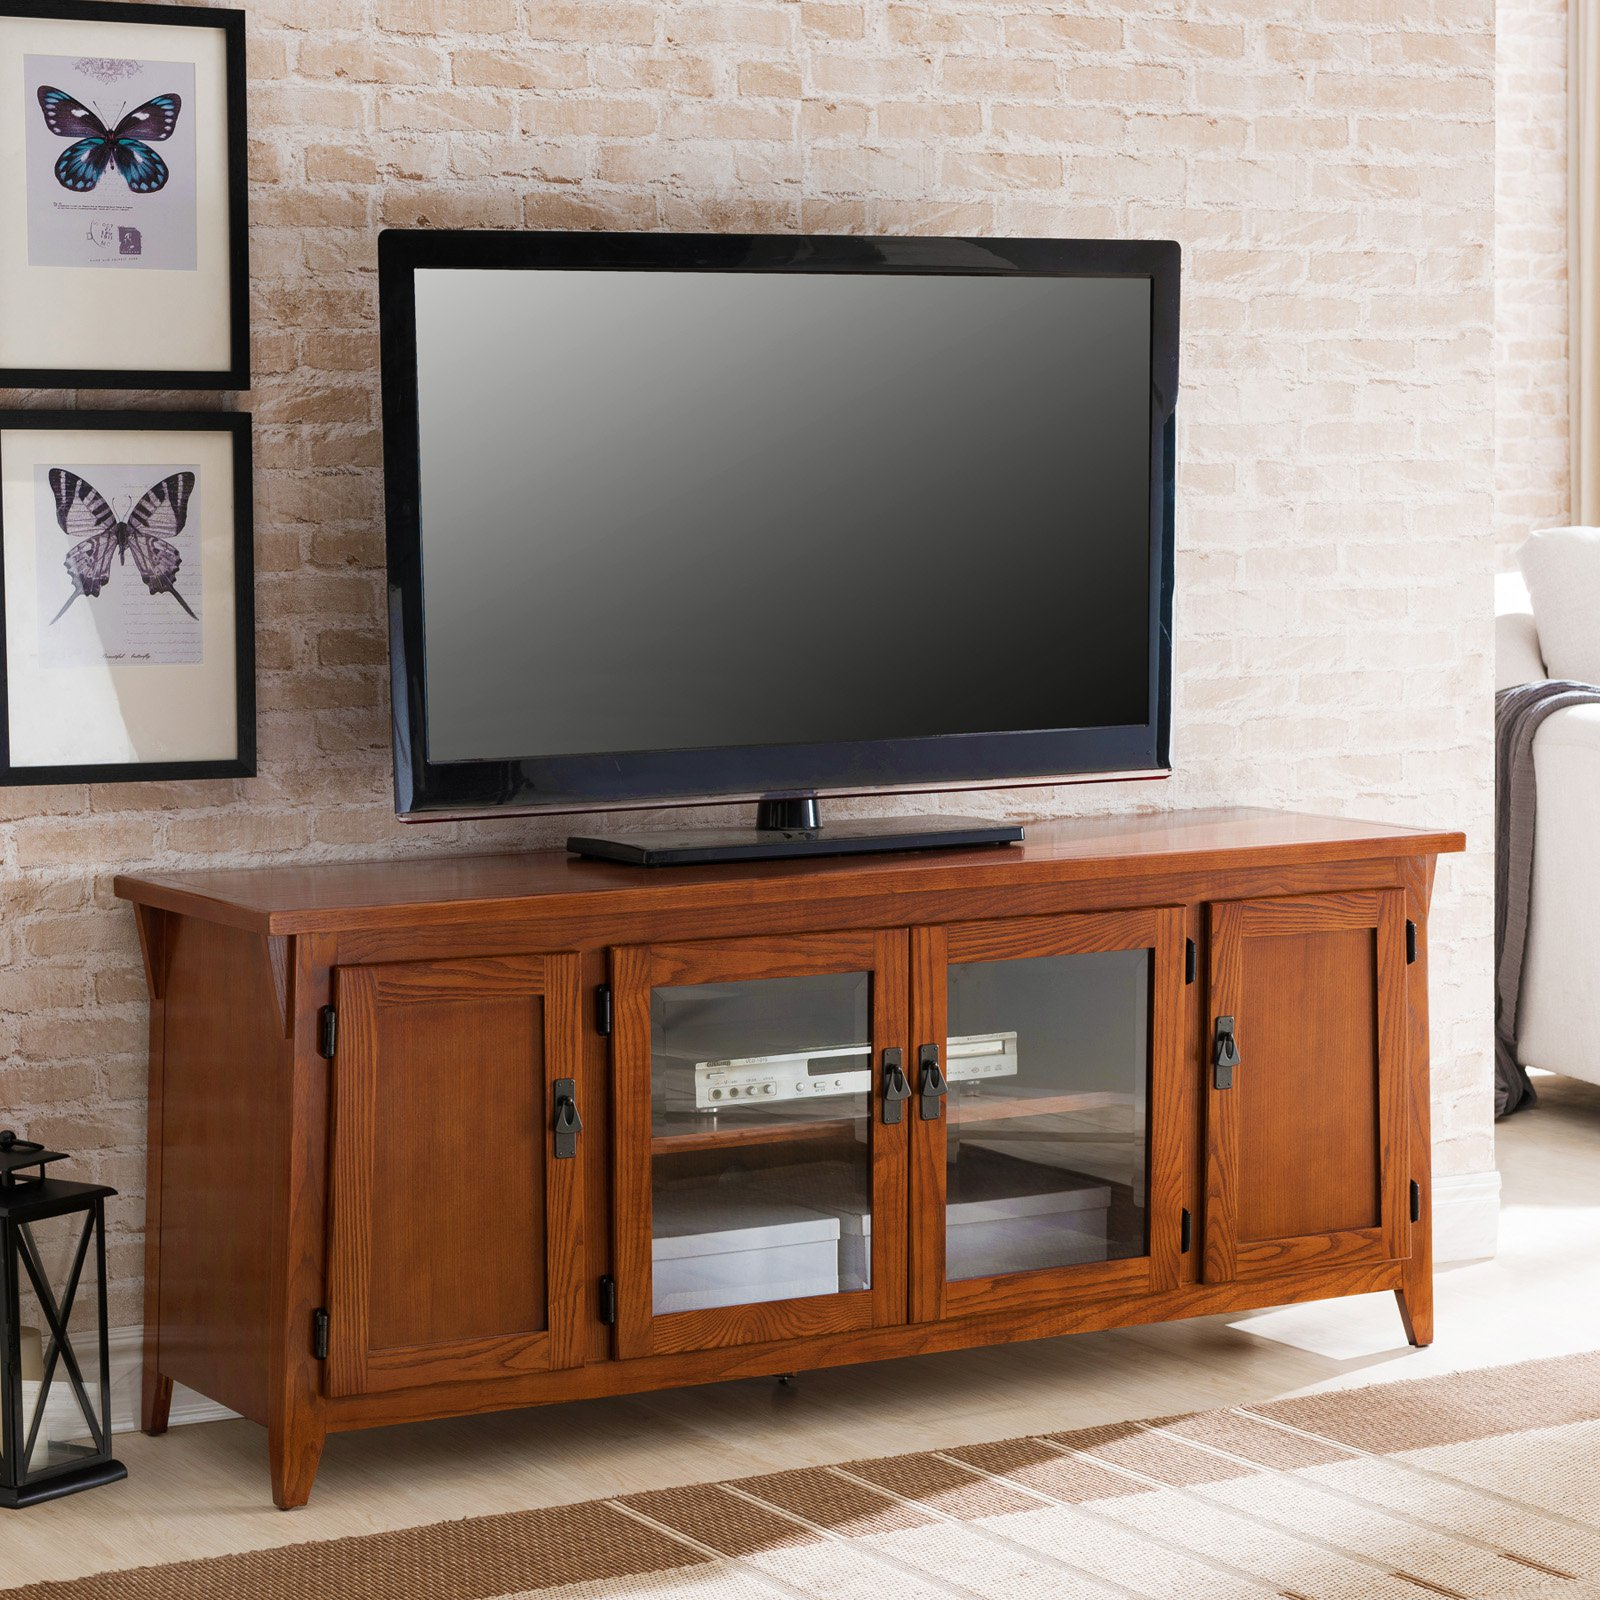 Leick Furniture Canted Side 60 in. 4 Door TV Console by Leick Furniture